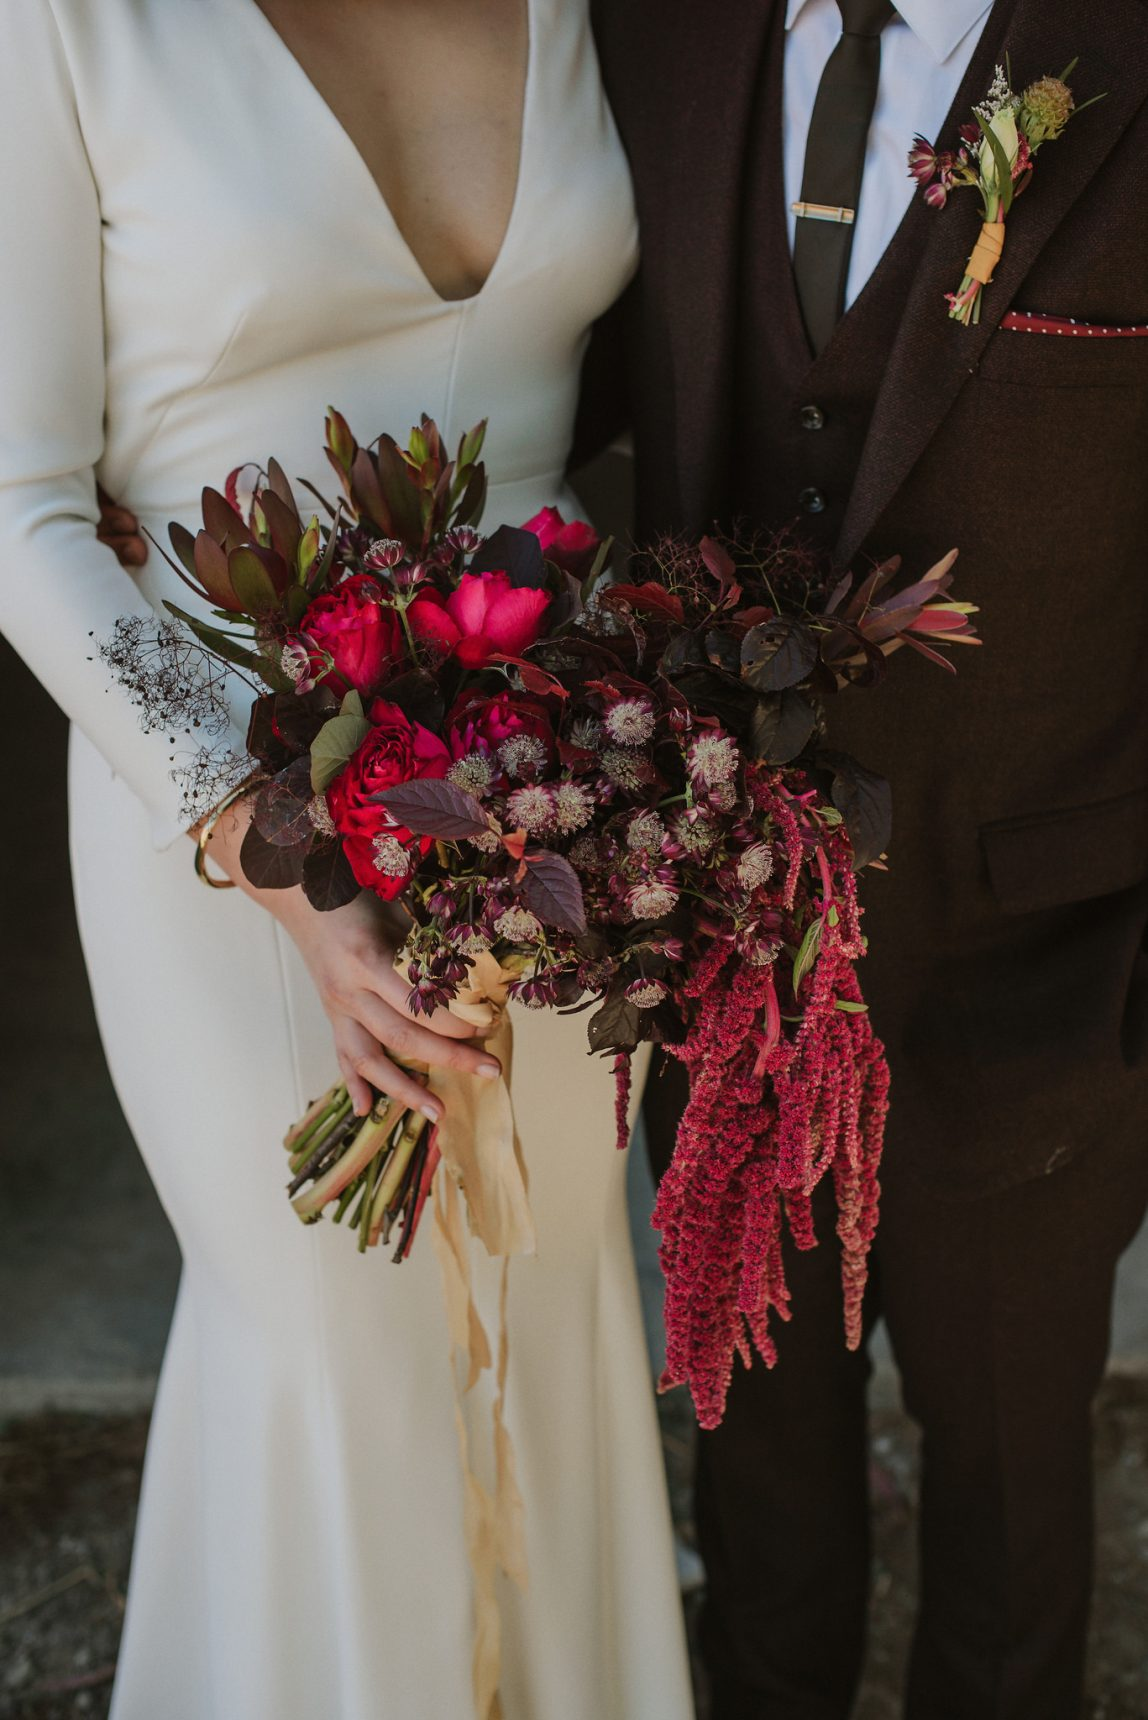 close up photo of wedding bouqet in dark greens and reds with a bride and groom barely visible behind, dress by couture wedding dress designer Angelina Haole Verona Italy